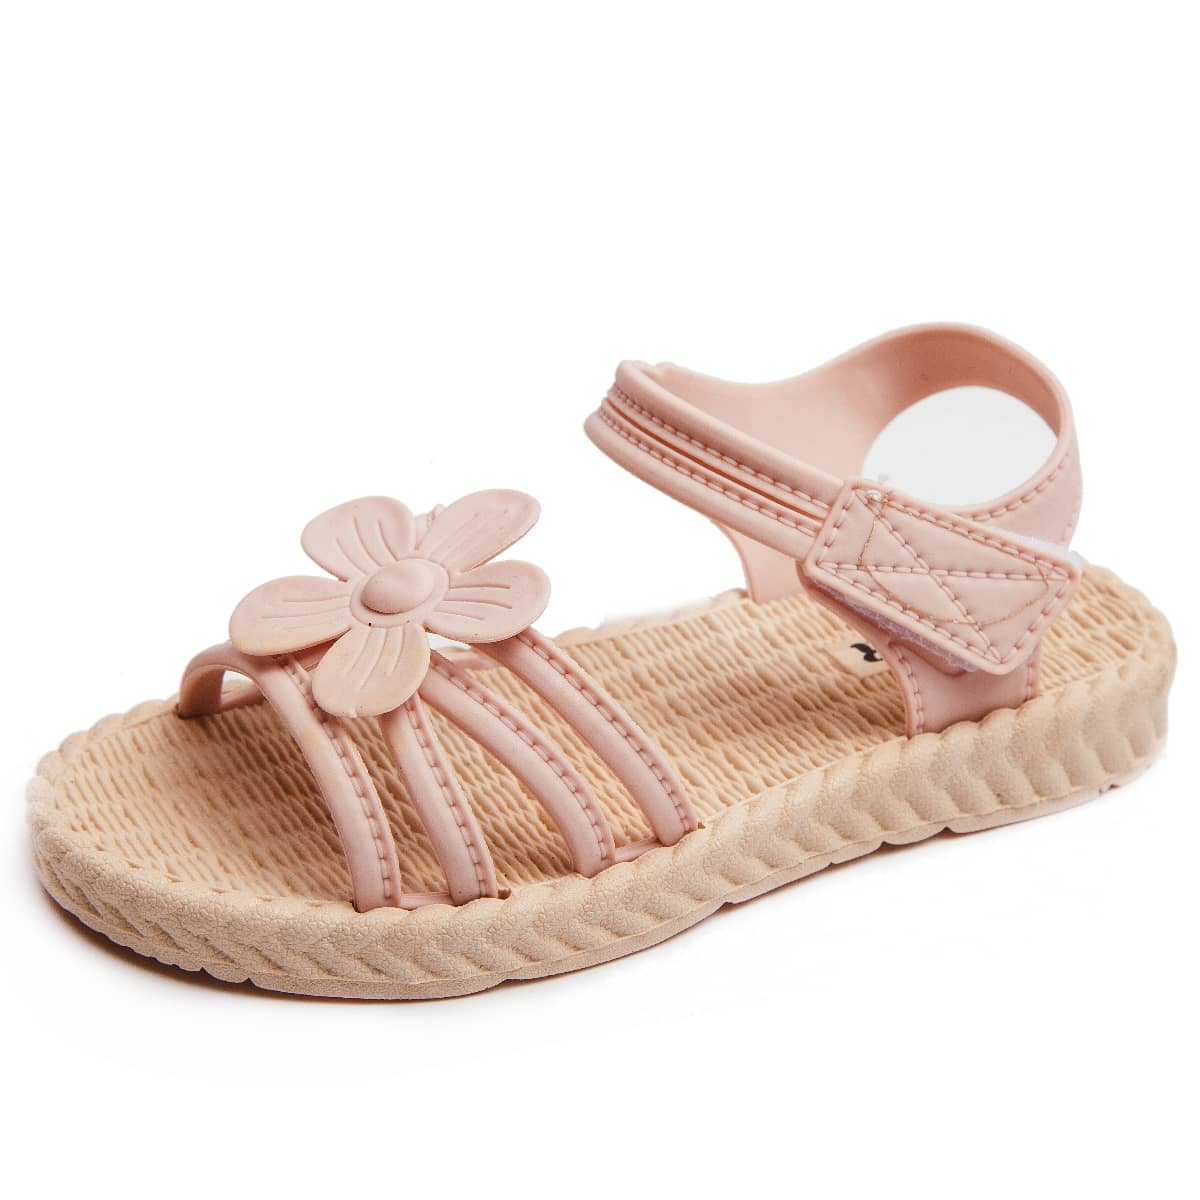 Girls Floral Decor Sandals, SHEIN  - buy with discount